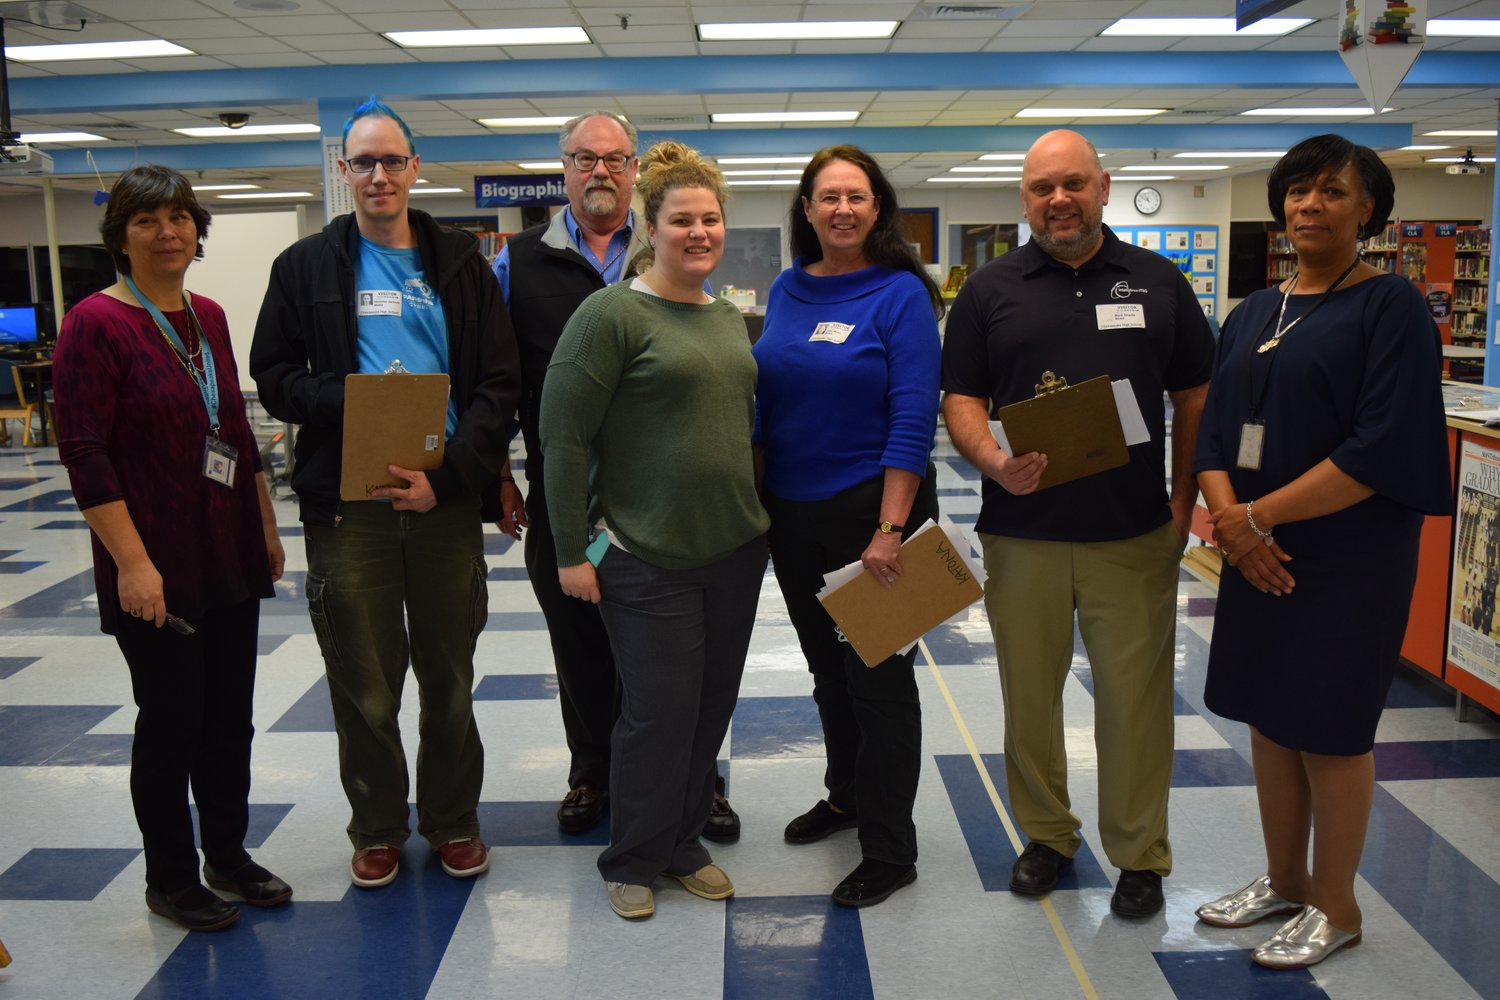 Several judges attended the fair to judge the projects, including people from the Armed Forces Communications and Electronics Association's Central Maryland chapter and LinQuest Corporation.